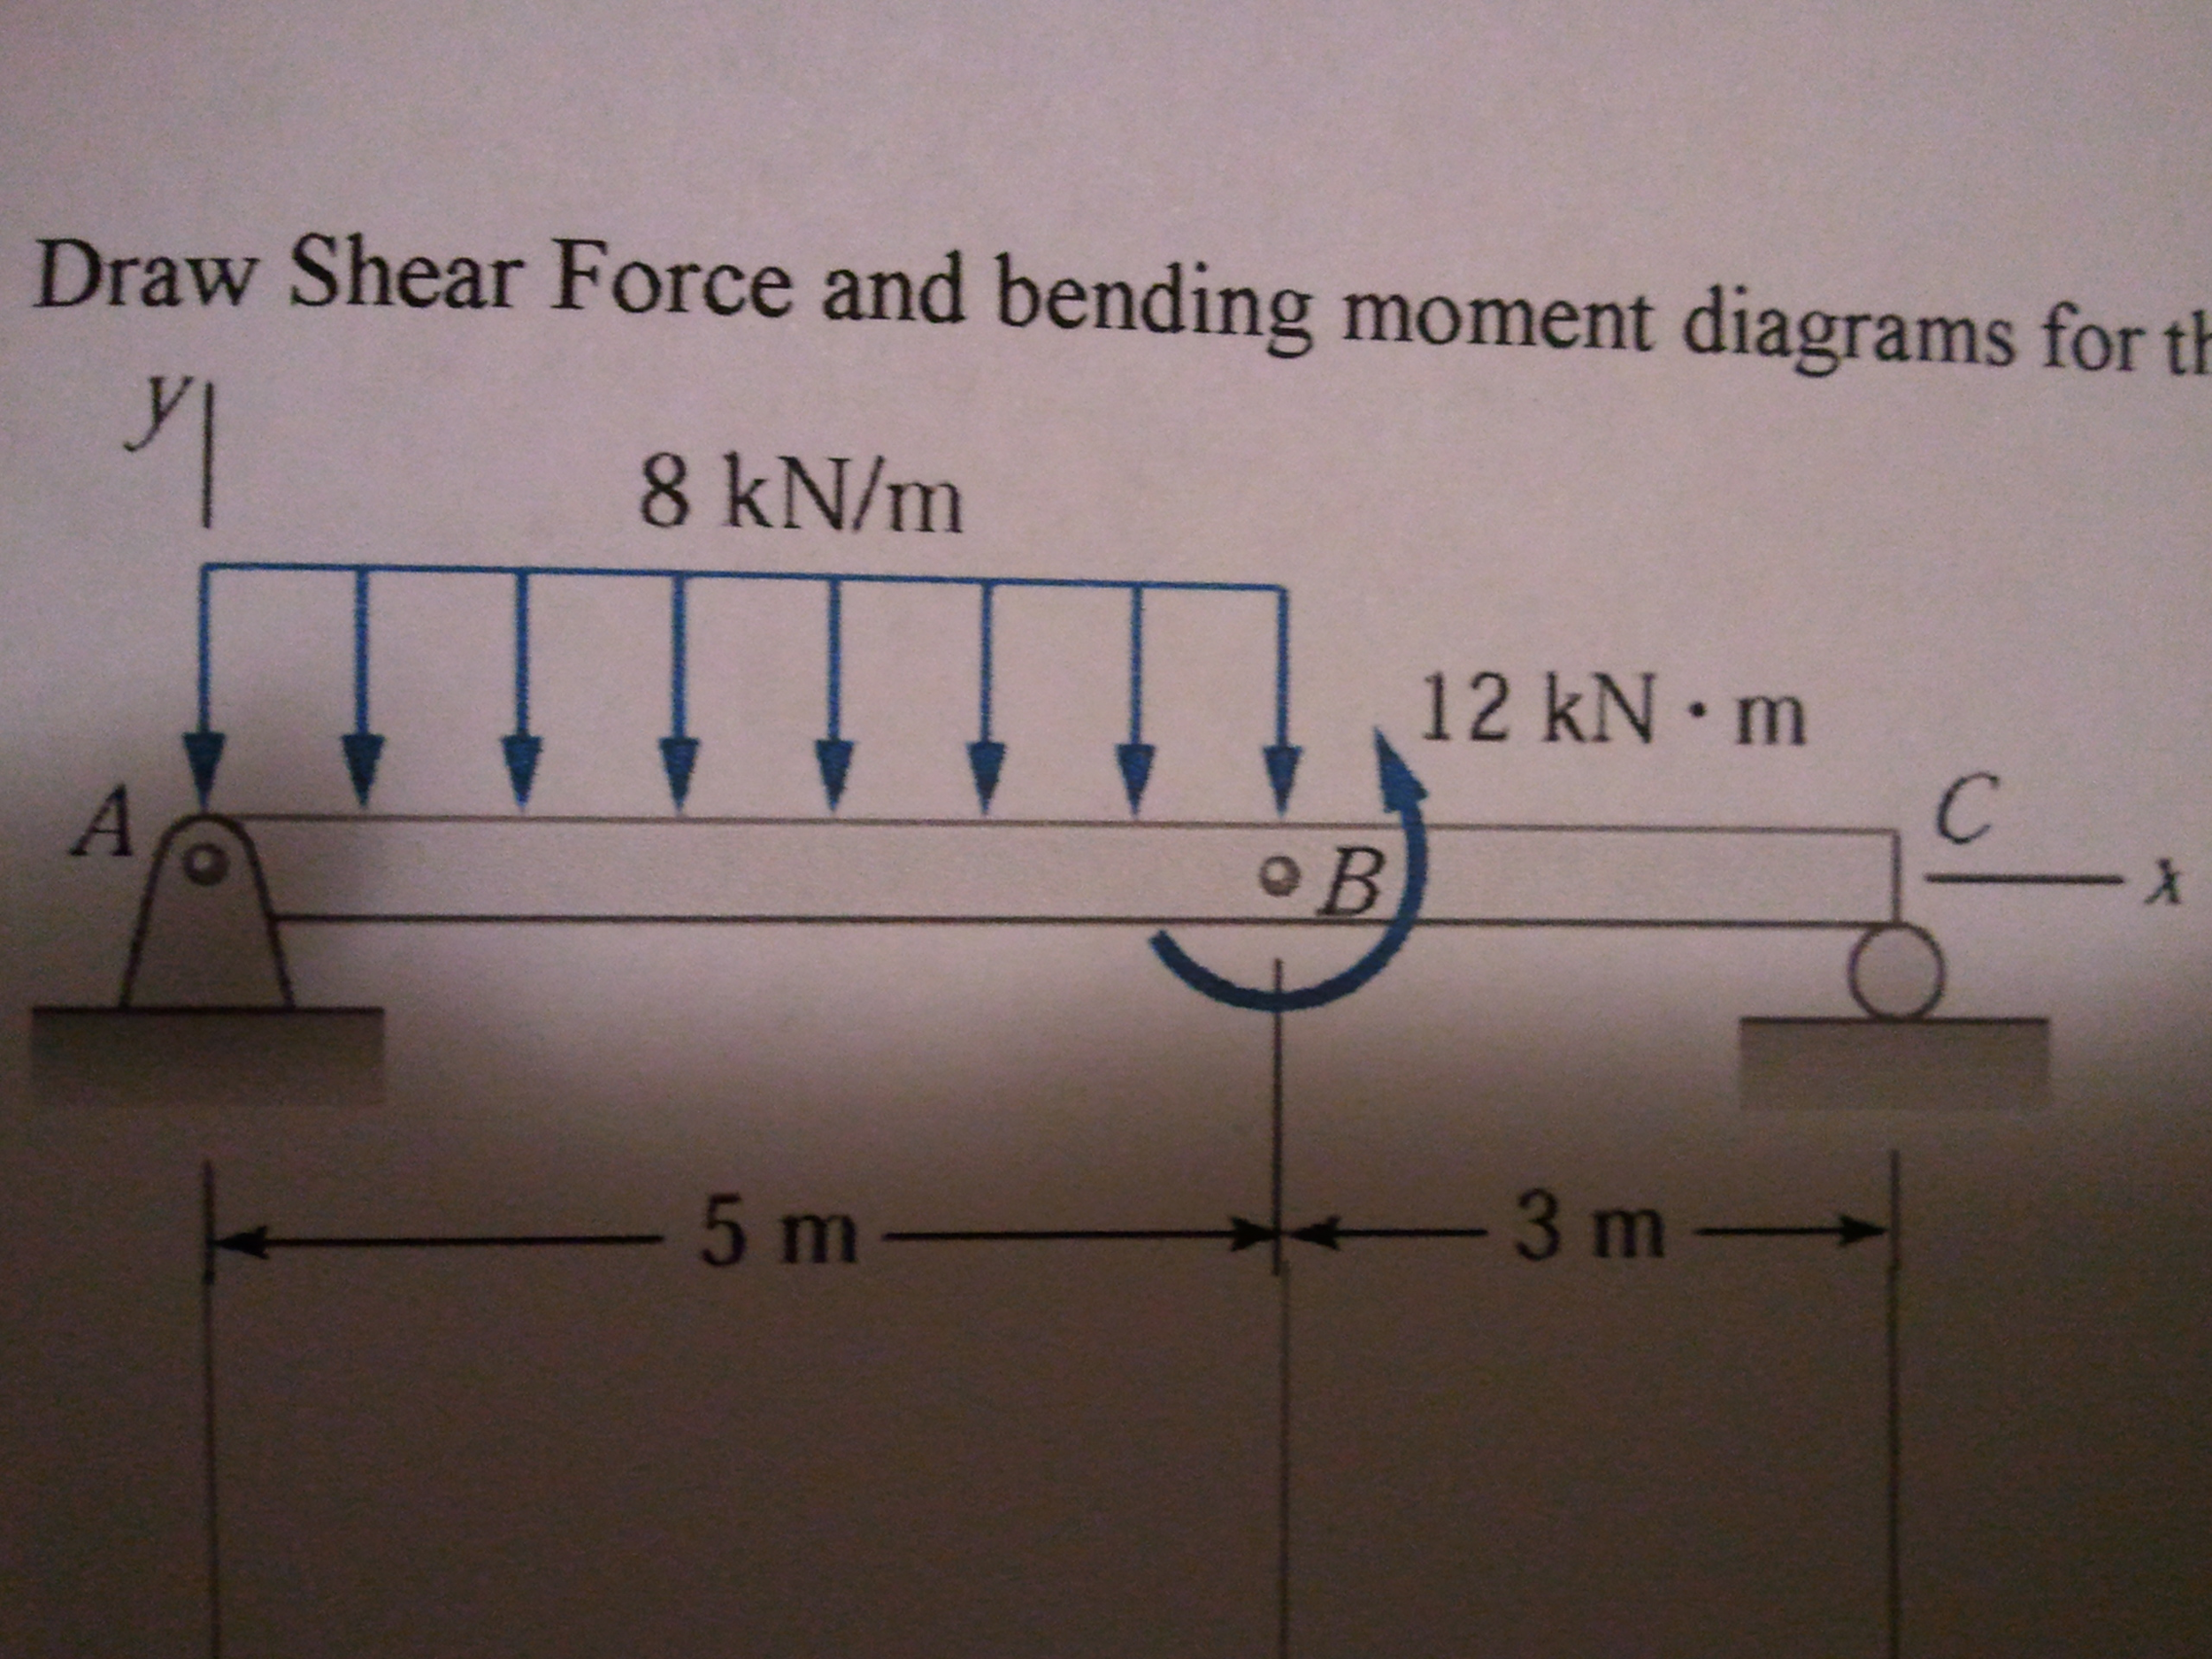 Draw Shear Force And Bending Moment Diagrams For T... | Chegg.com